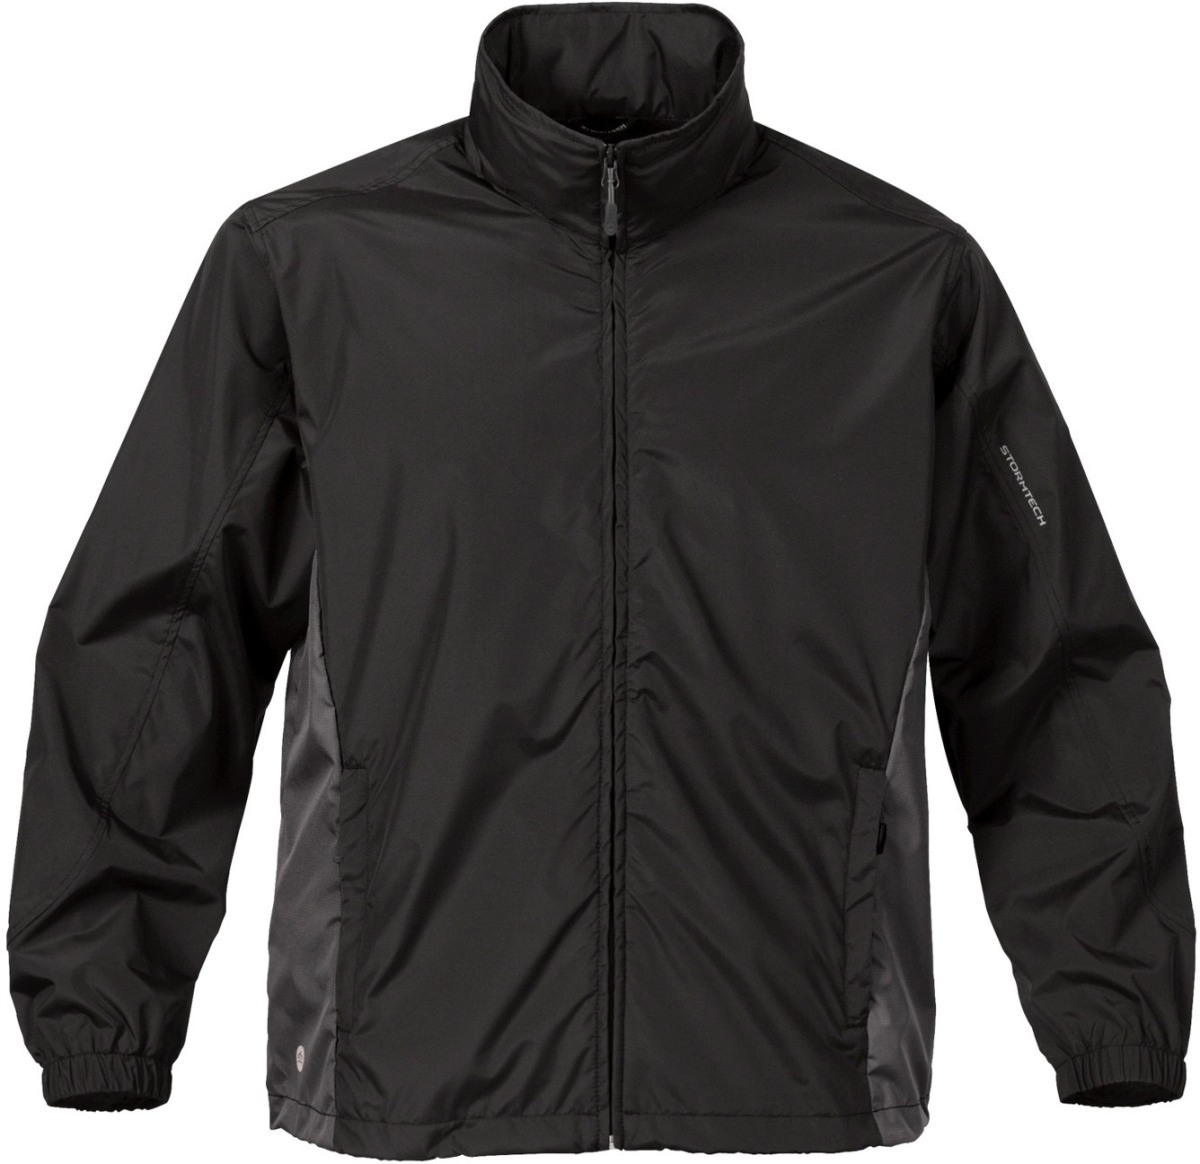 Men's Stormtech Micro Light Jacket-StormTech